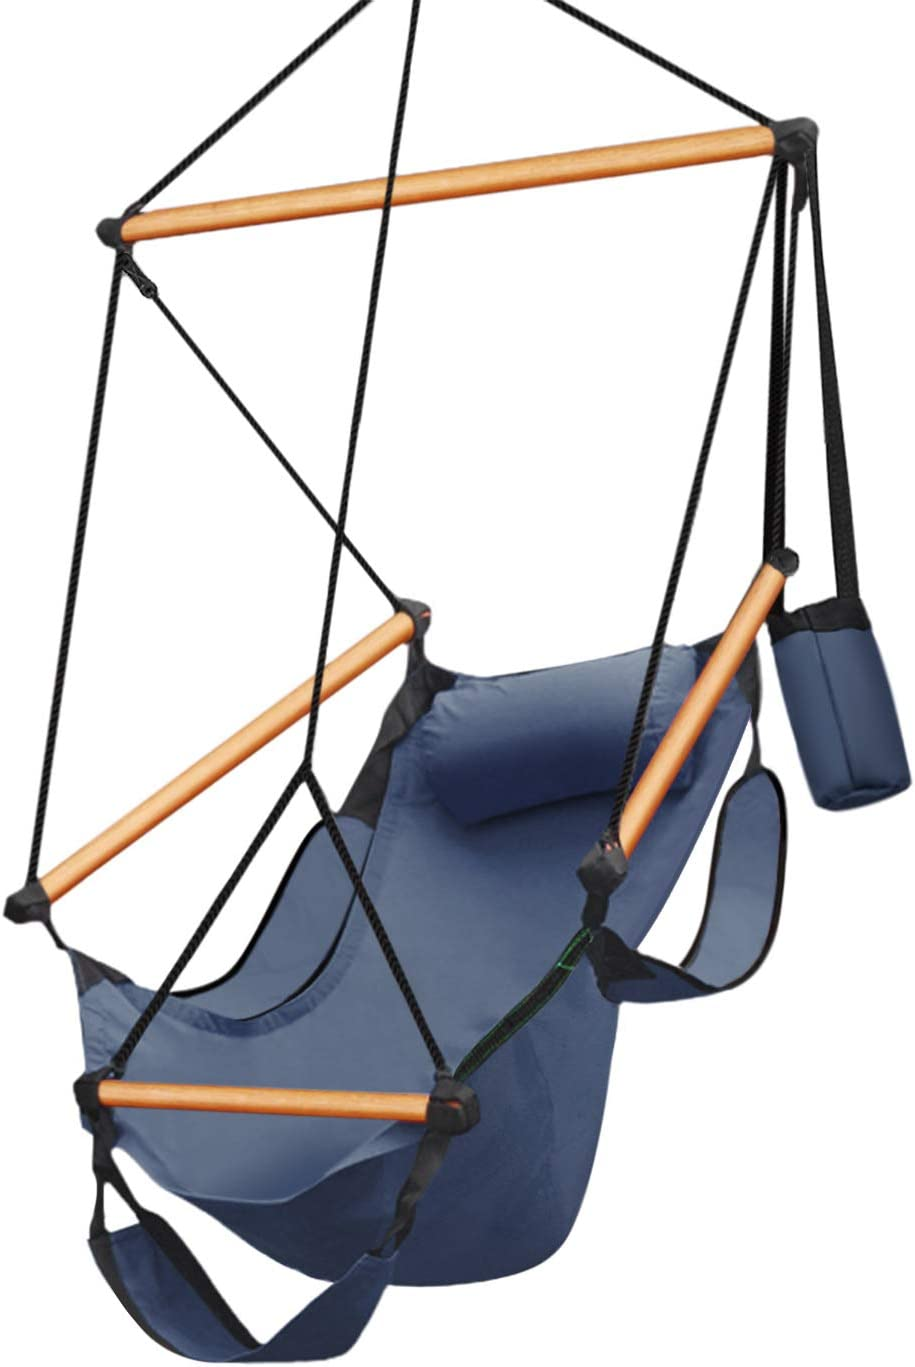 Flexzion Hanging Rope Hammock Chair (Blue) Air Deluxe Sky Swing Outdoor Seat Solid Wood 250lb with Pillow Arm Arrest Footrest and Drink Holder for Patio Furniture Camping Travel Porch Lounge